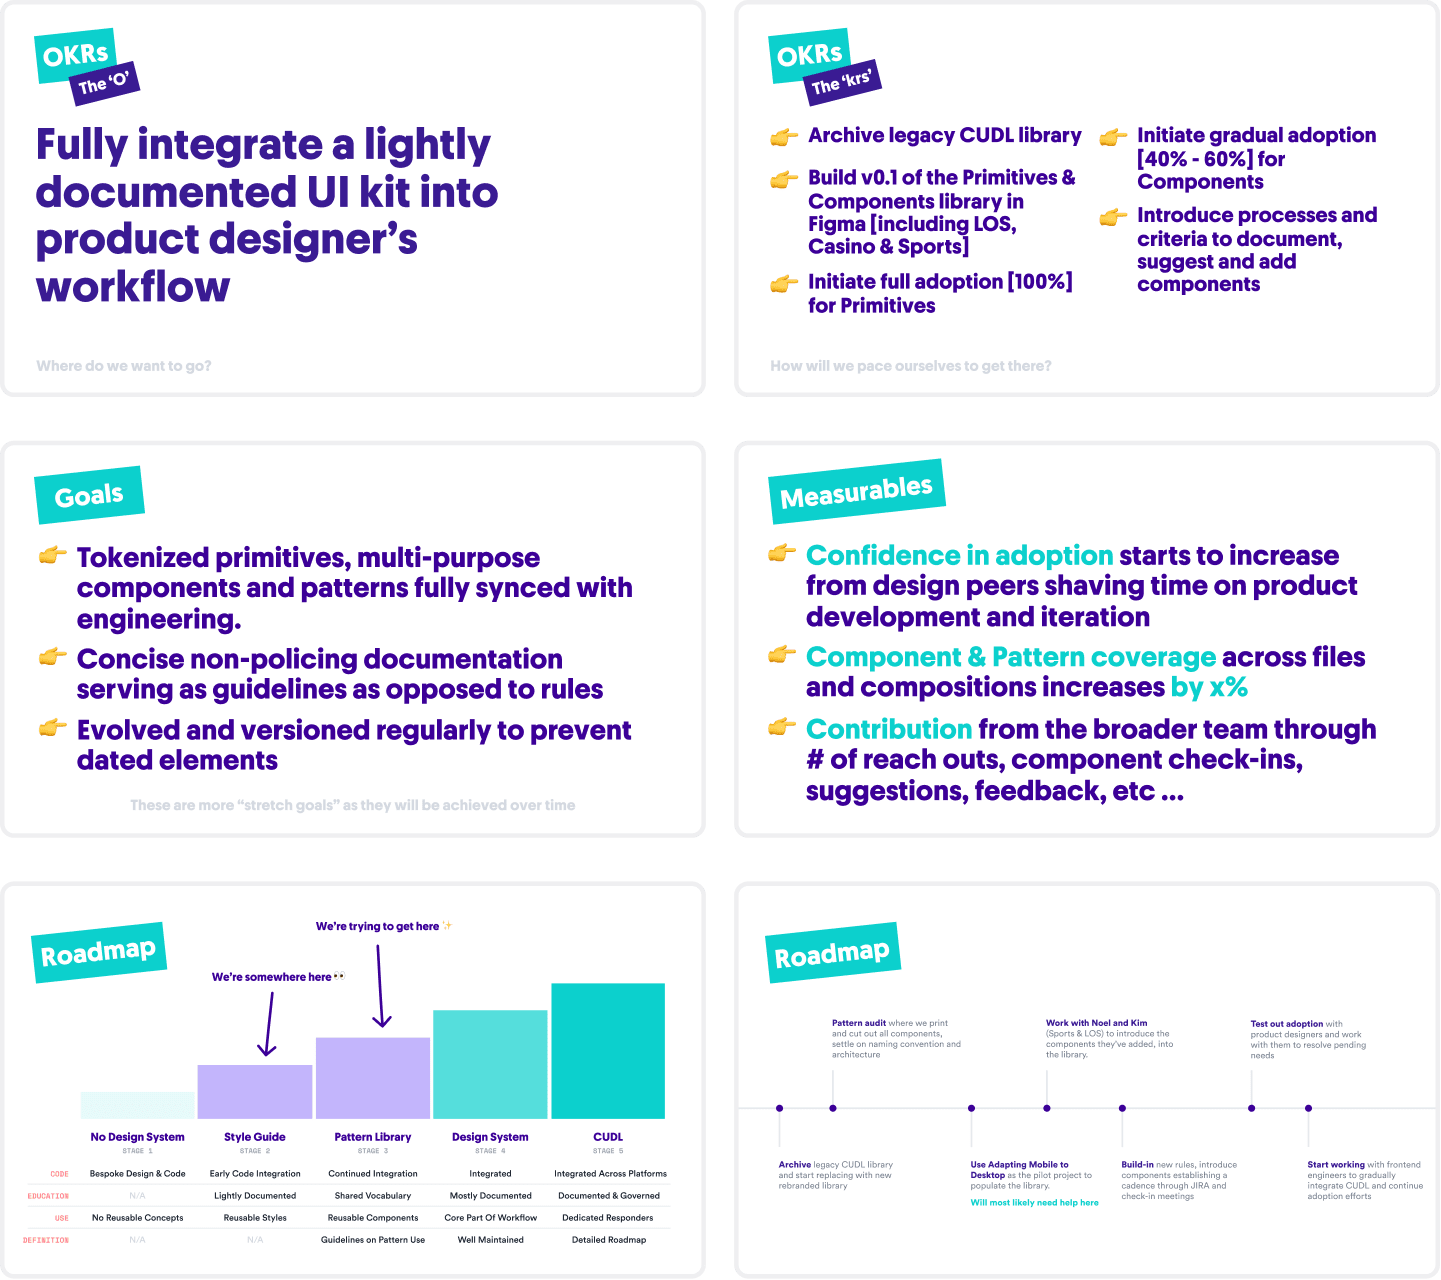 These are just a few slides from a roadmap meeting I had with a few key stakeholders within the product team